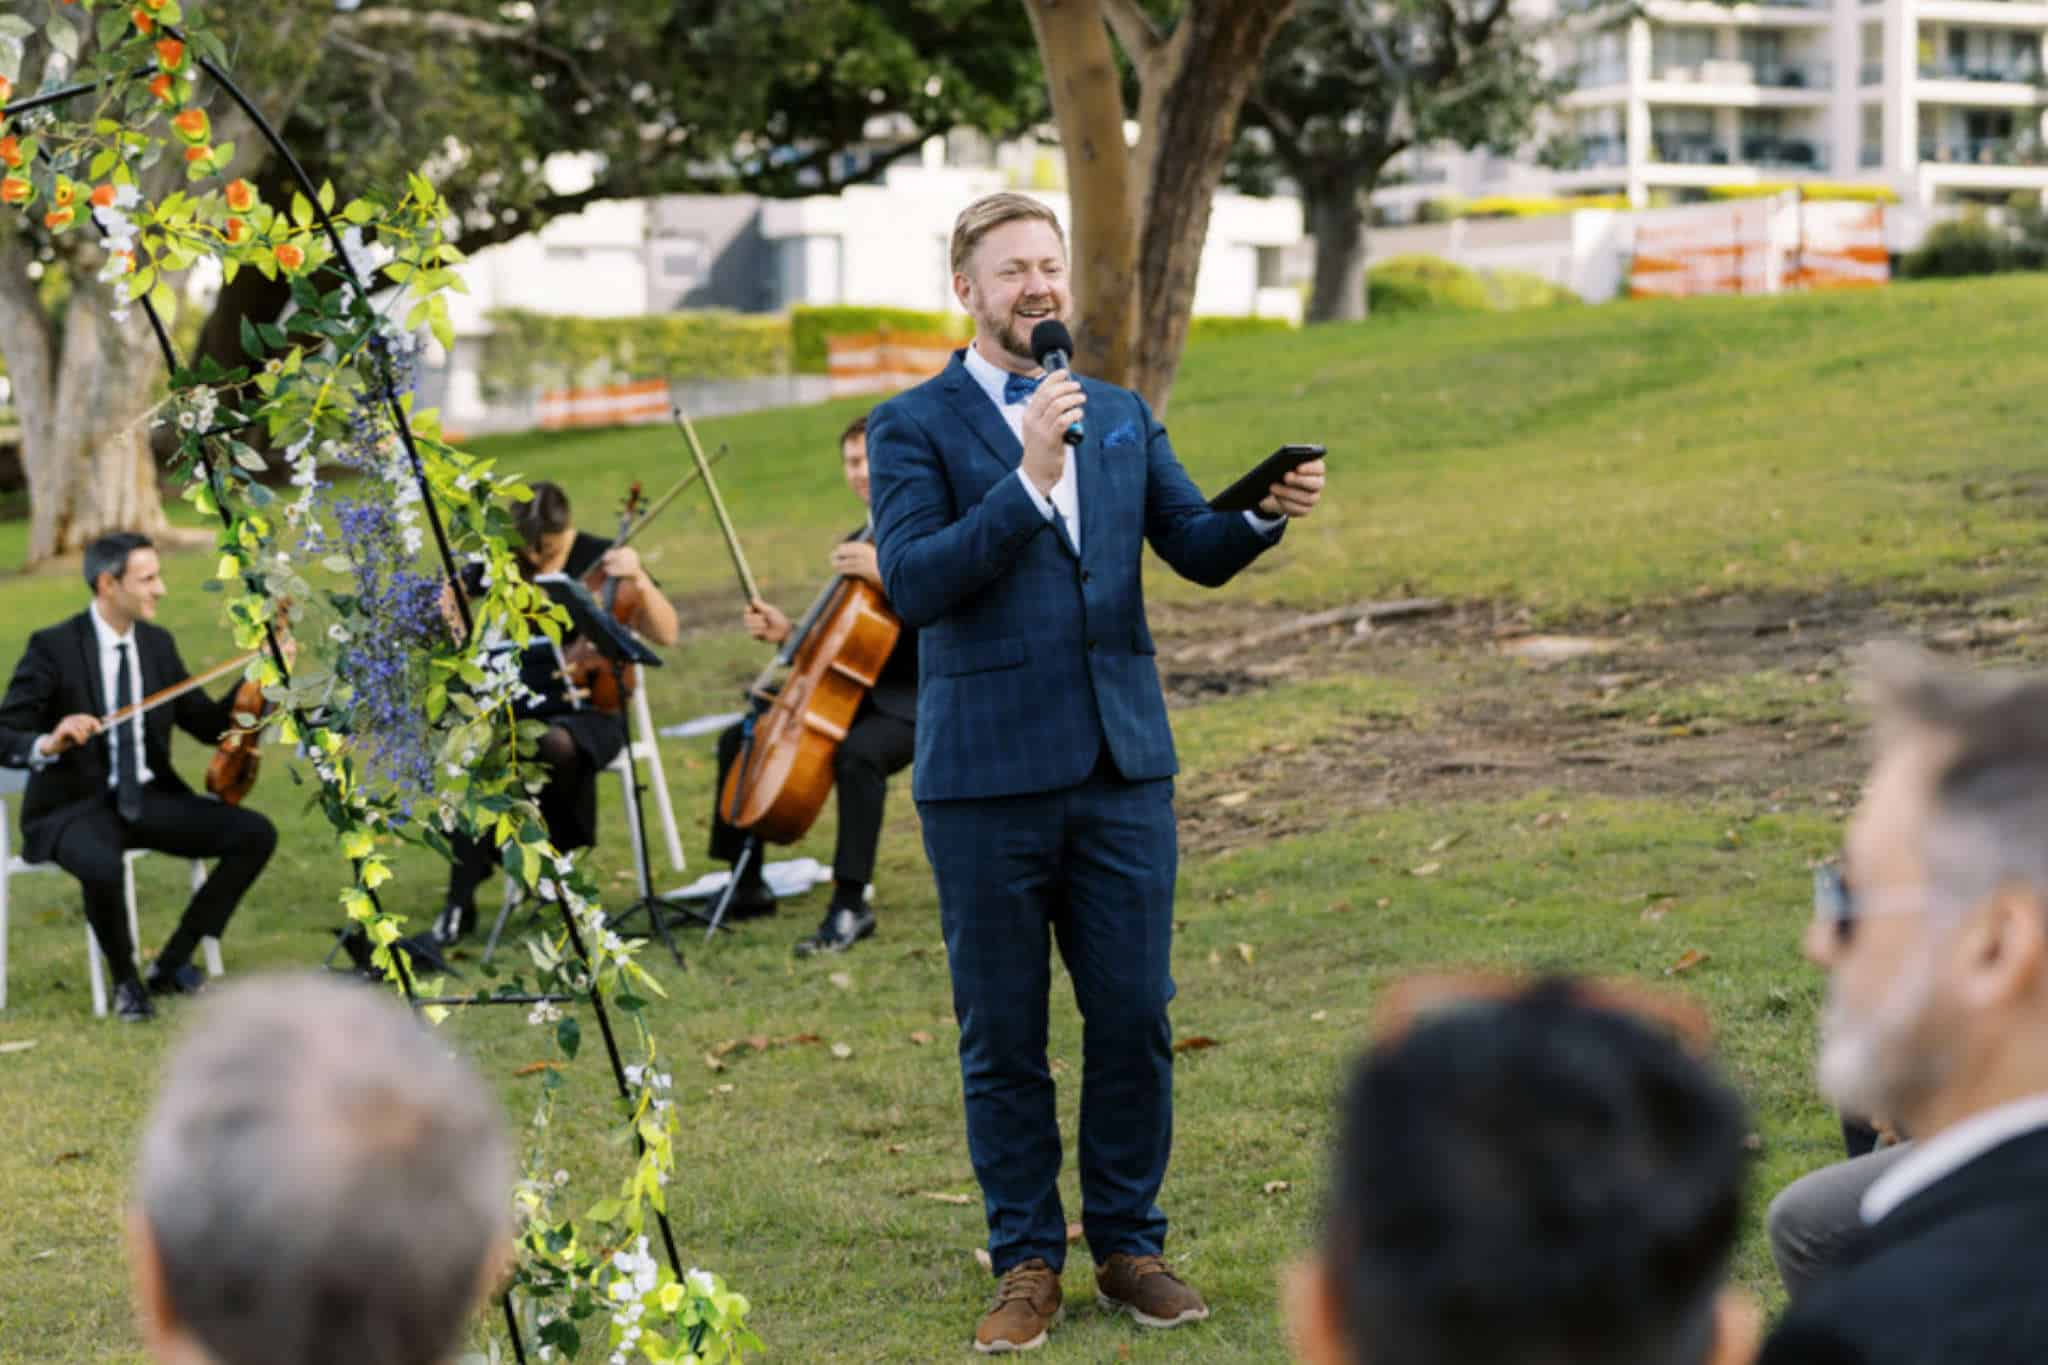 NSW Weddings return after COVID restrictions